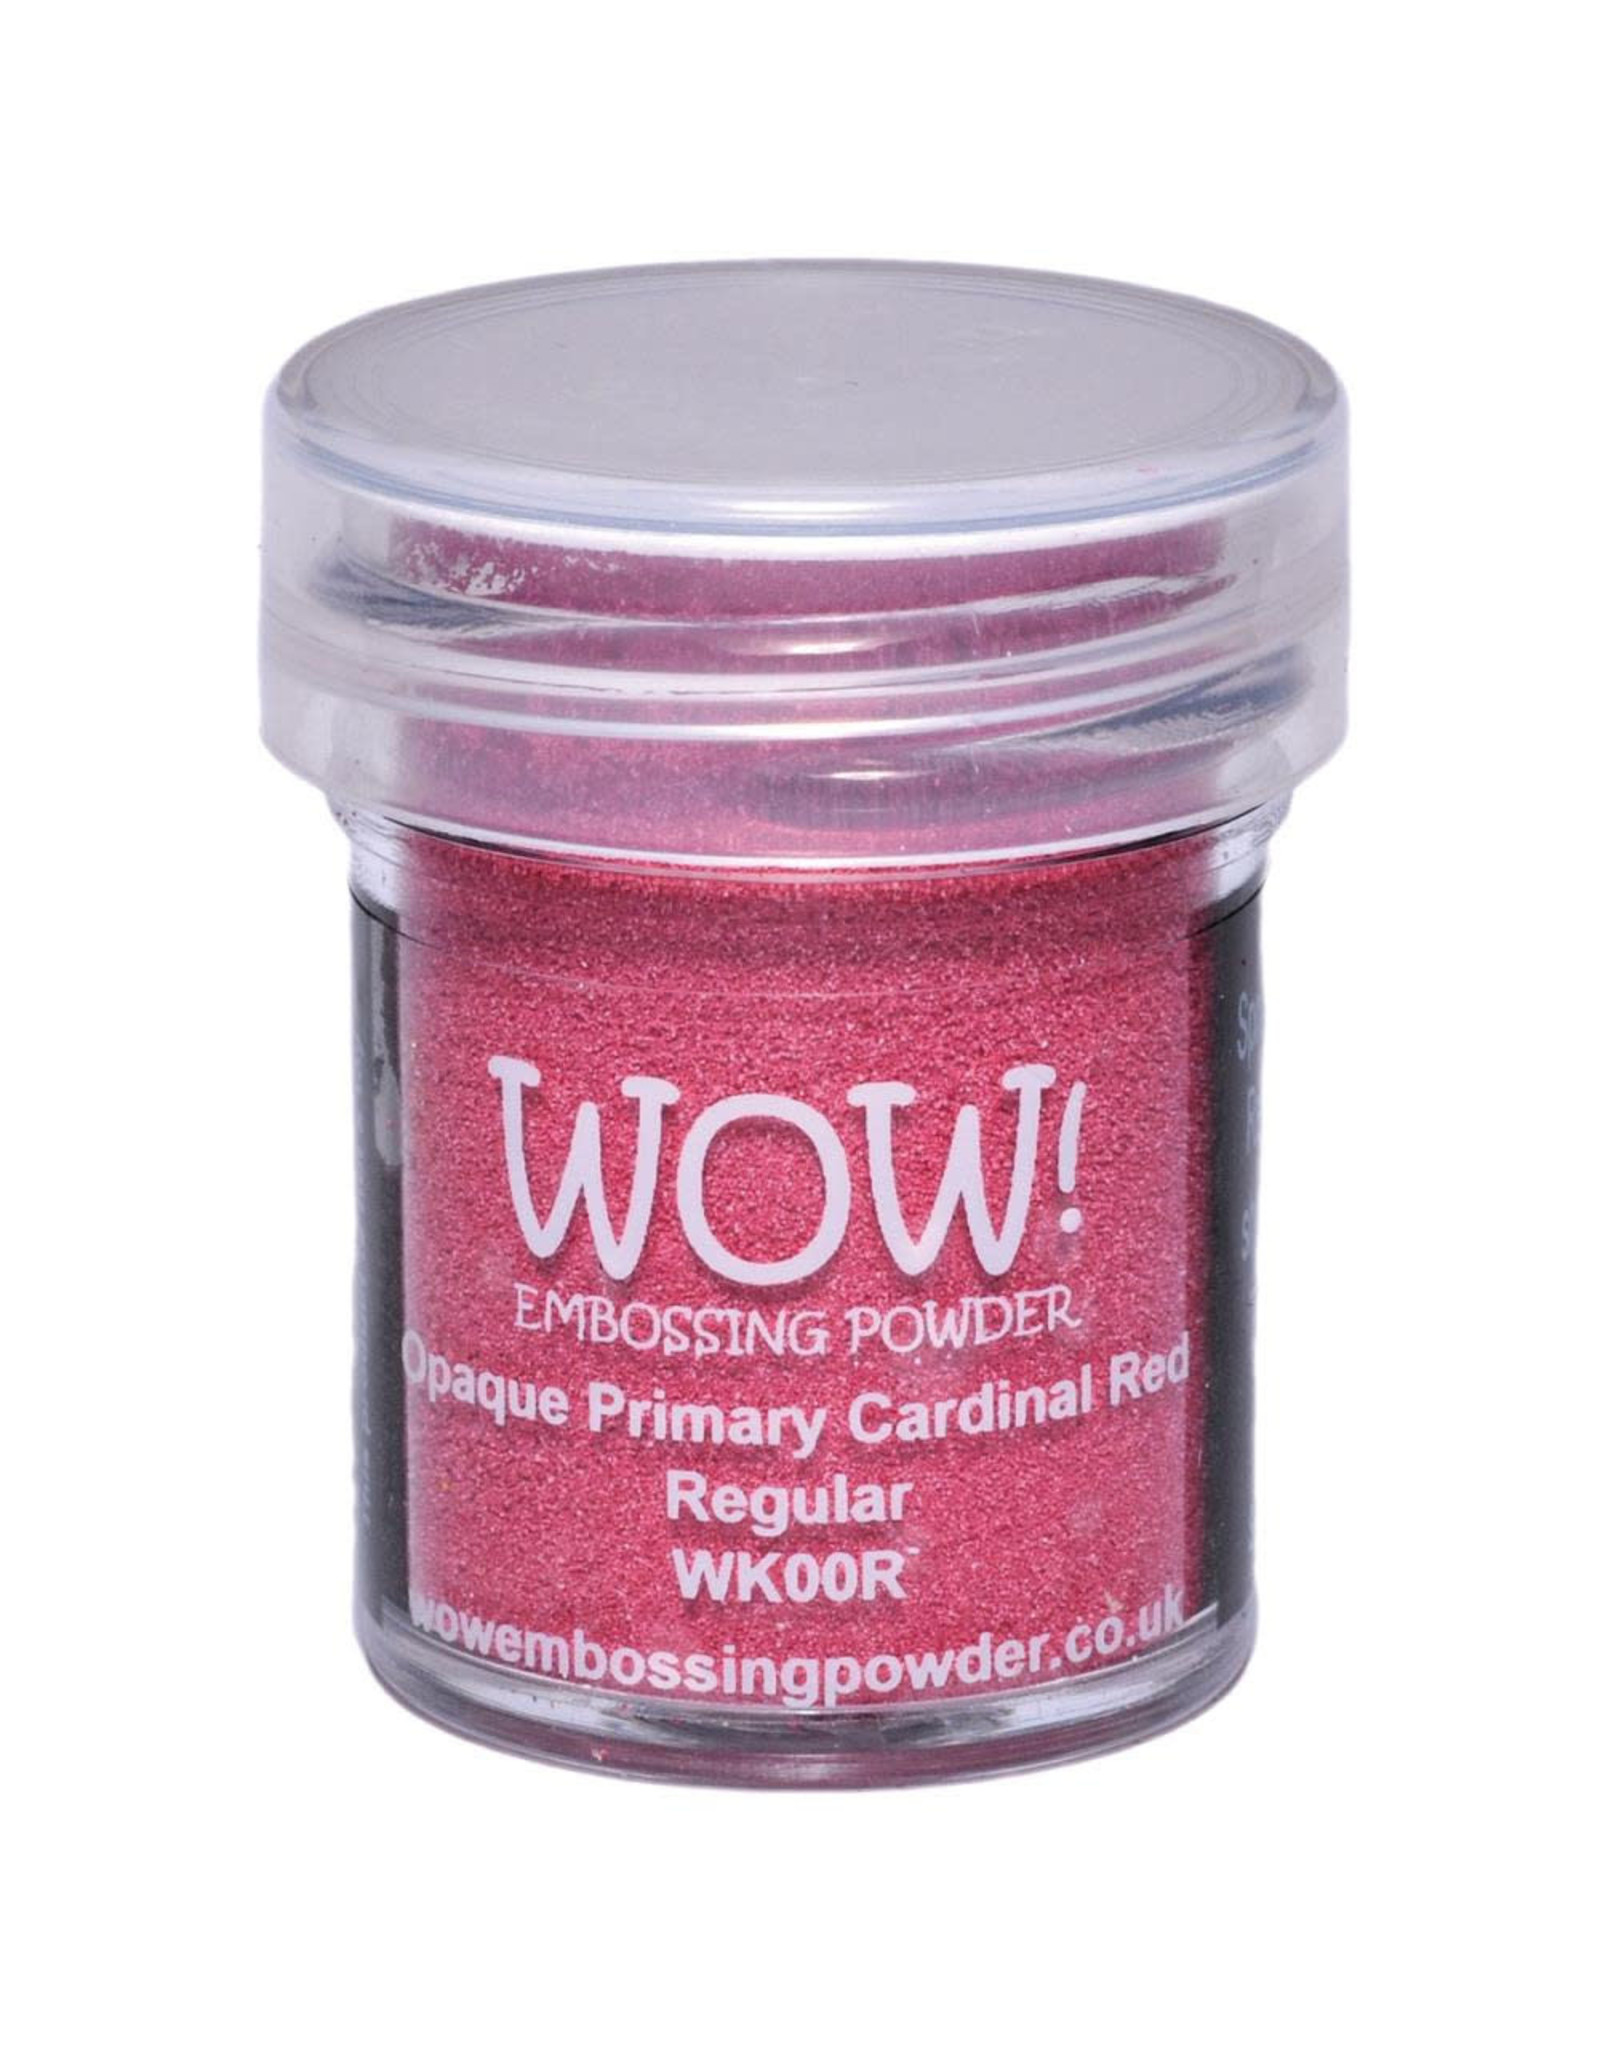 WOW! WOW! Embossing Powder - Opaque Primary Cardinal Red